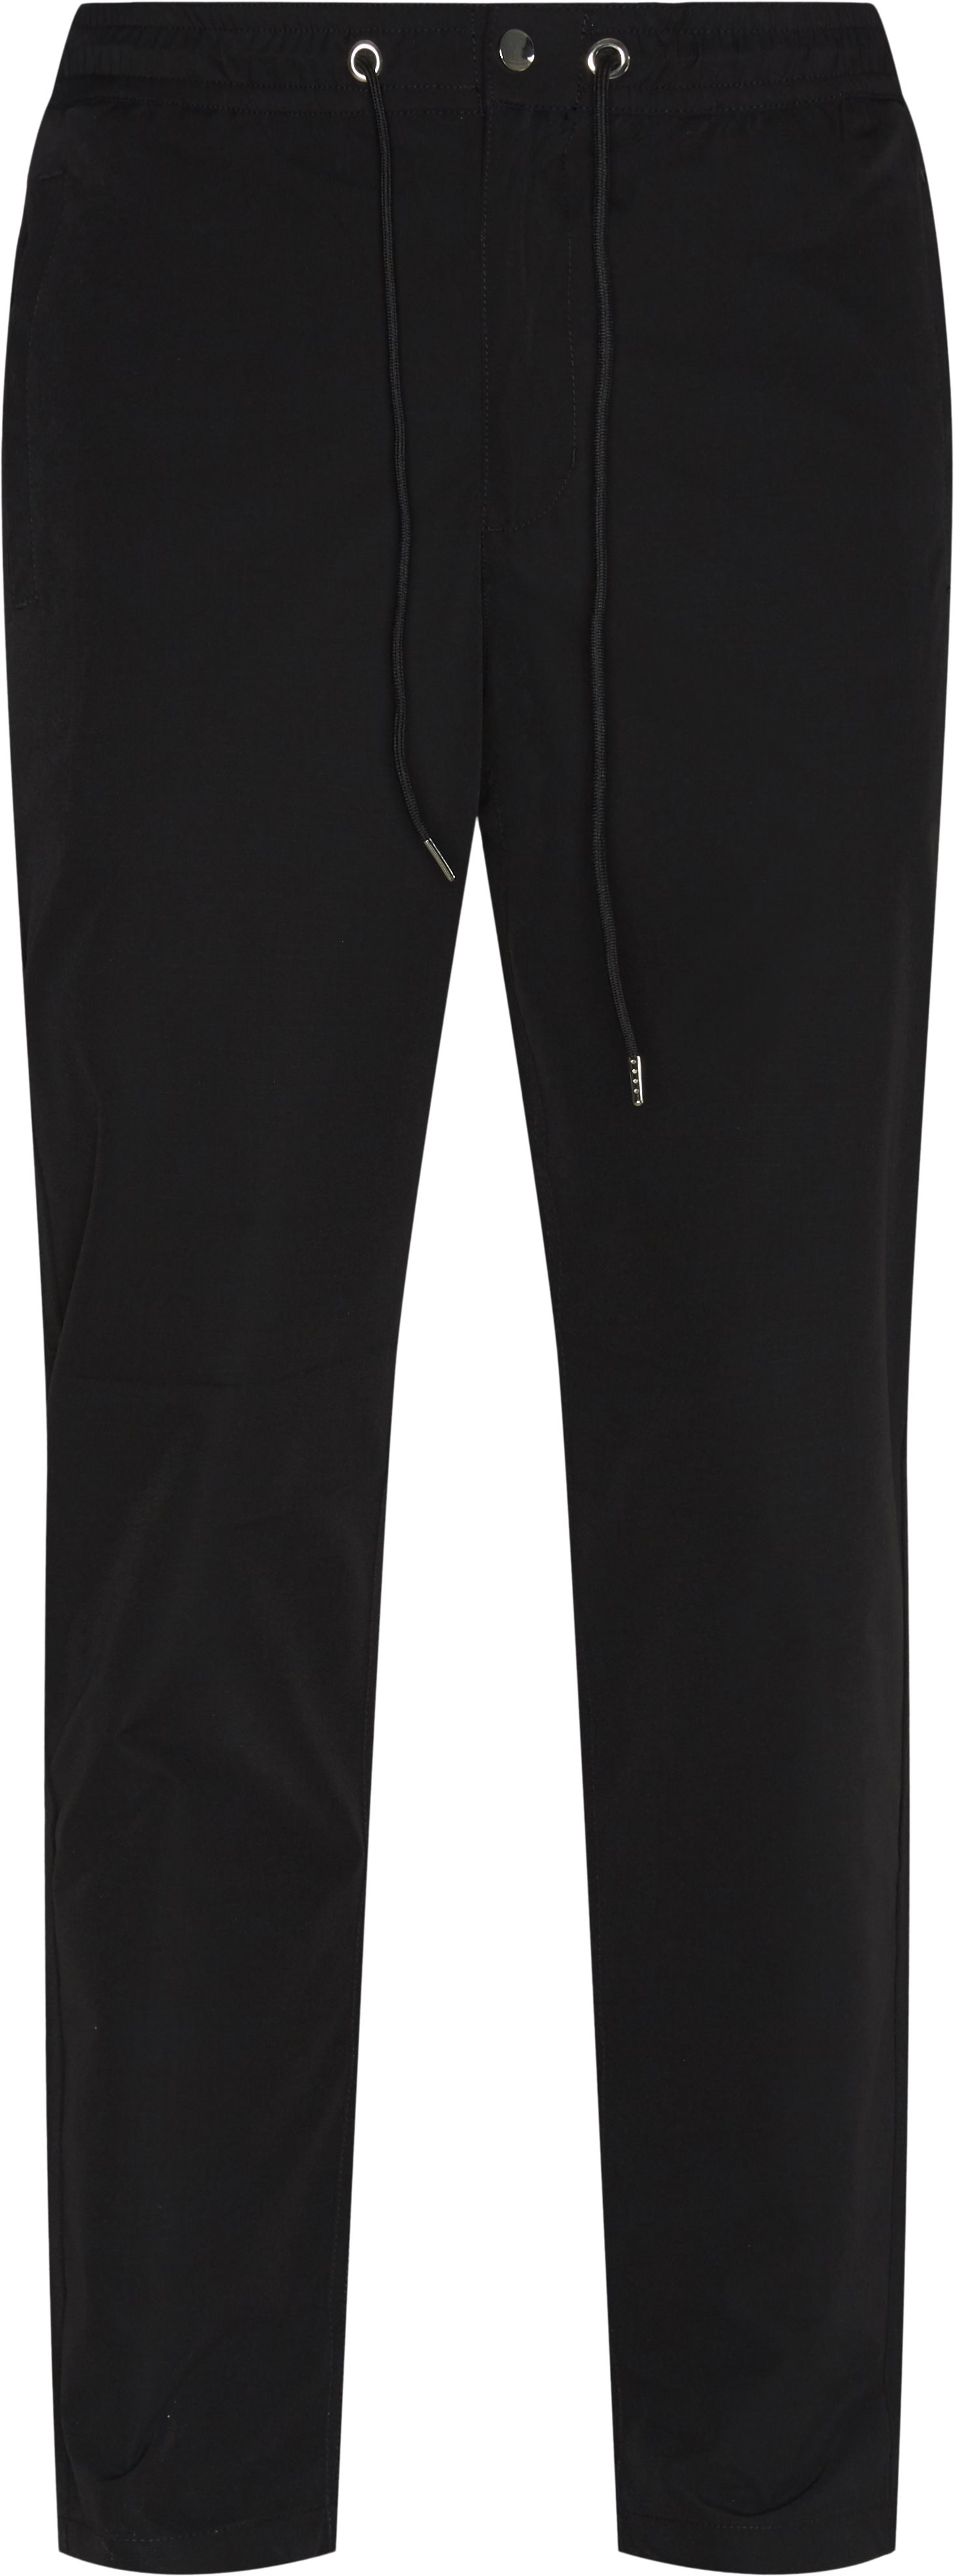 Stalino Trackpant - Bukser - Regular - Sort